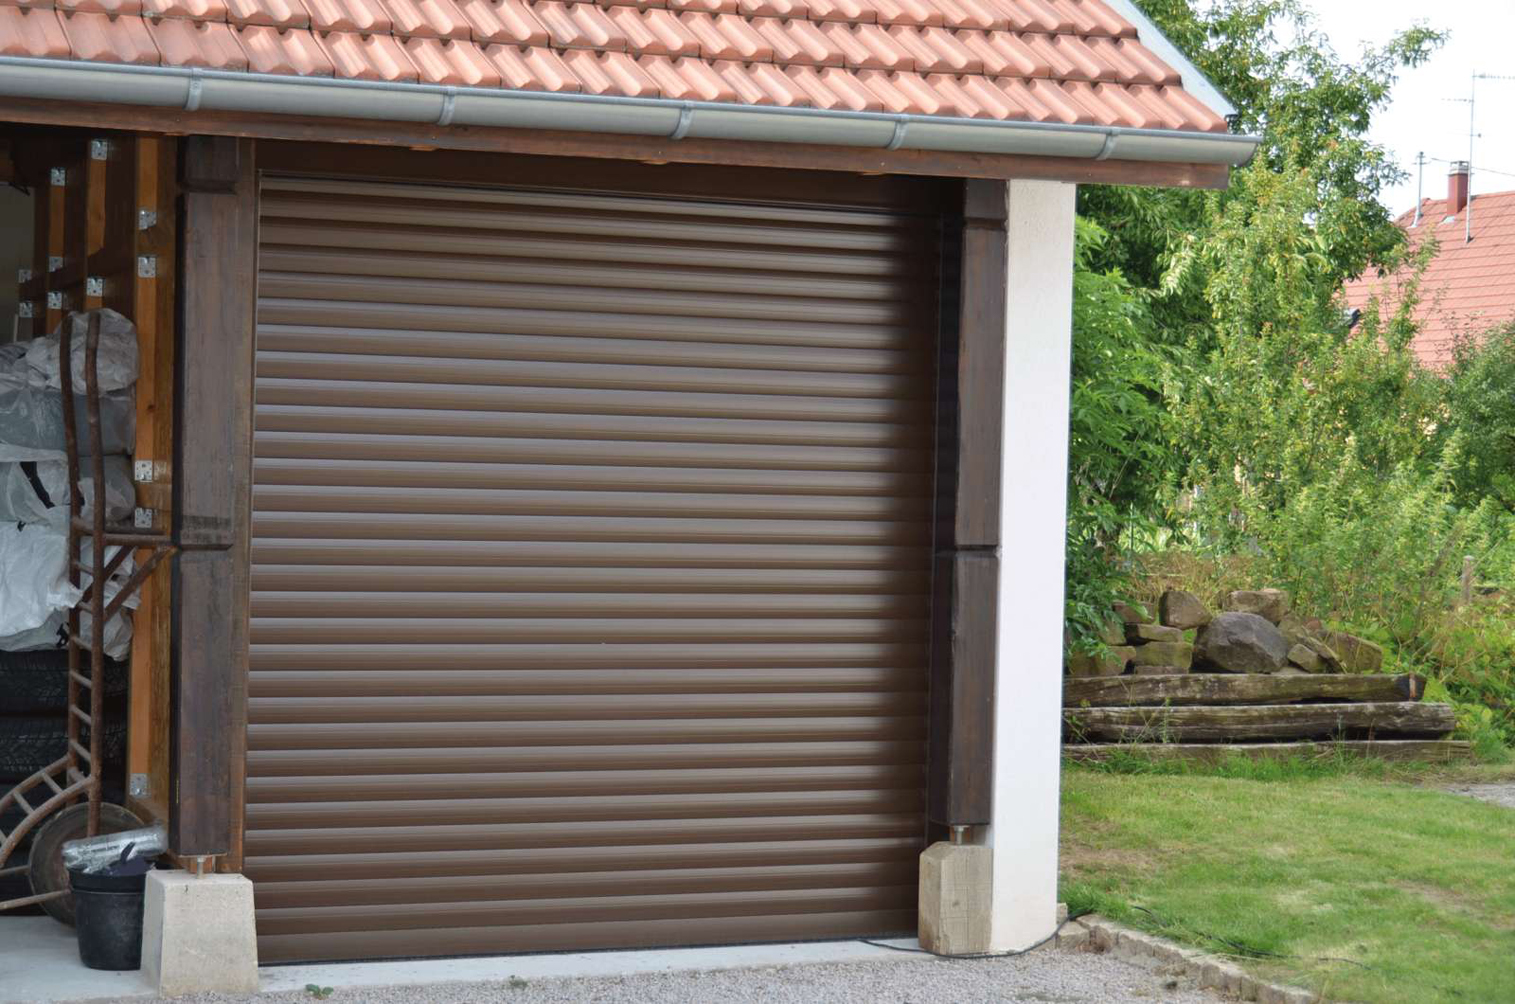 Nouvelle porte de garage enroulable carrol de soprofen for Porte de garage enroulable isolante